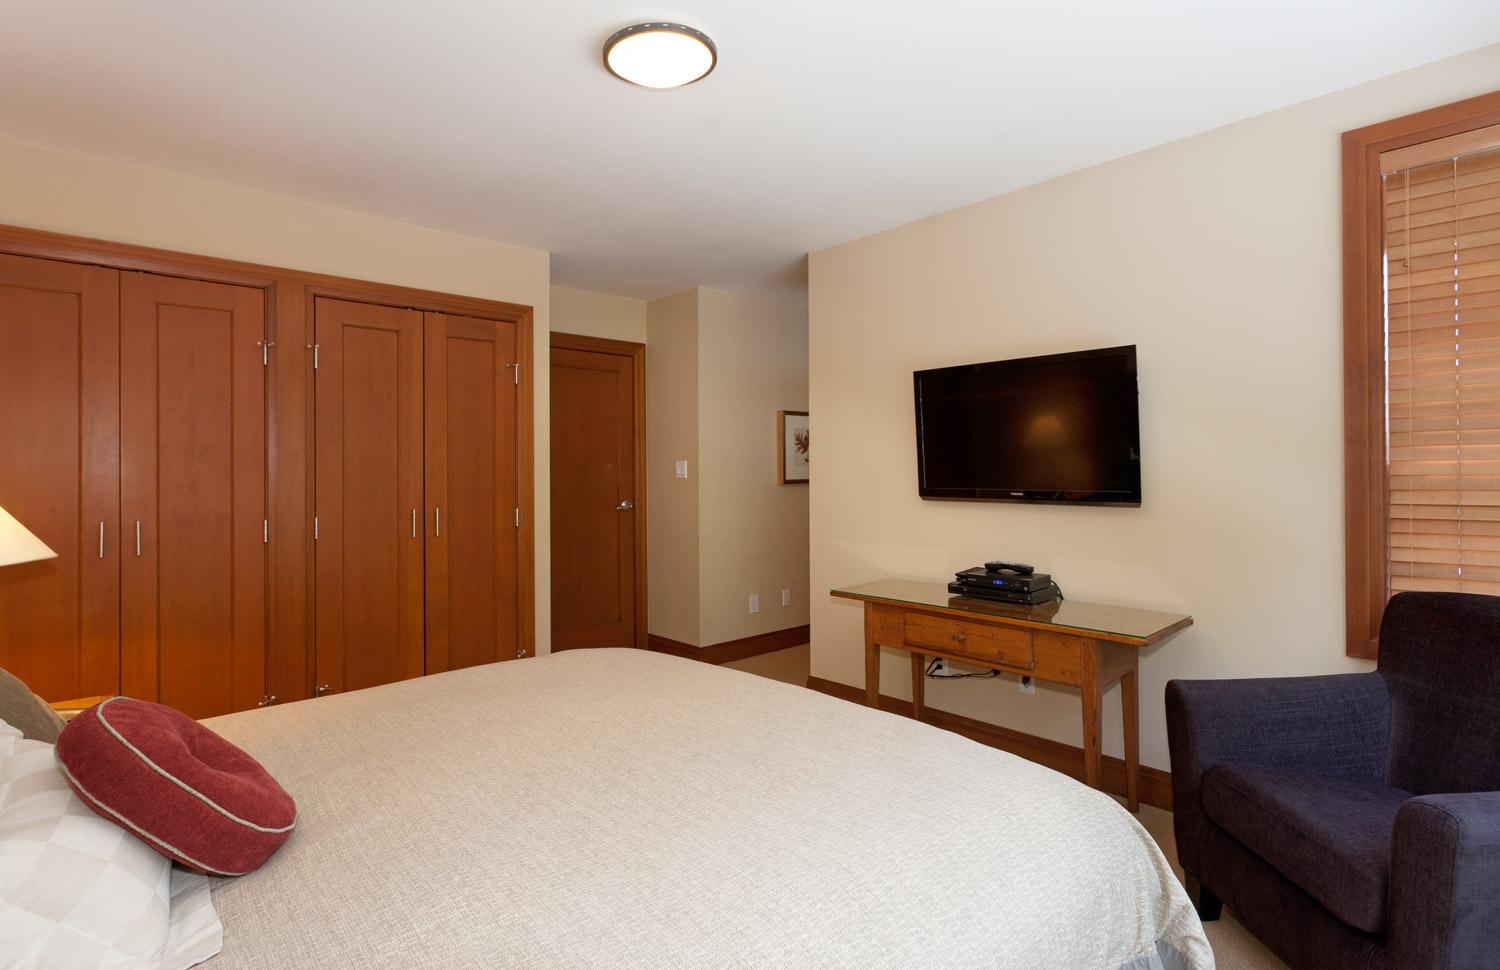 Master bedroom (1 of 4 bedrooms): king bed, large flat screen TV (with HD chanels and PVR capabilities), full ensuite bathroom (see pictures)